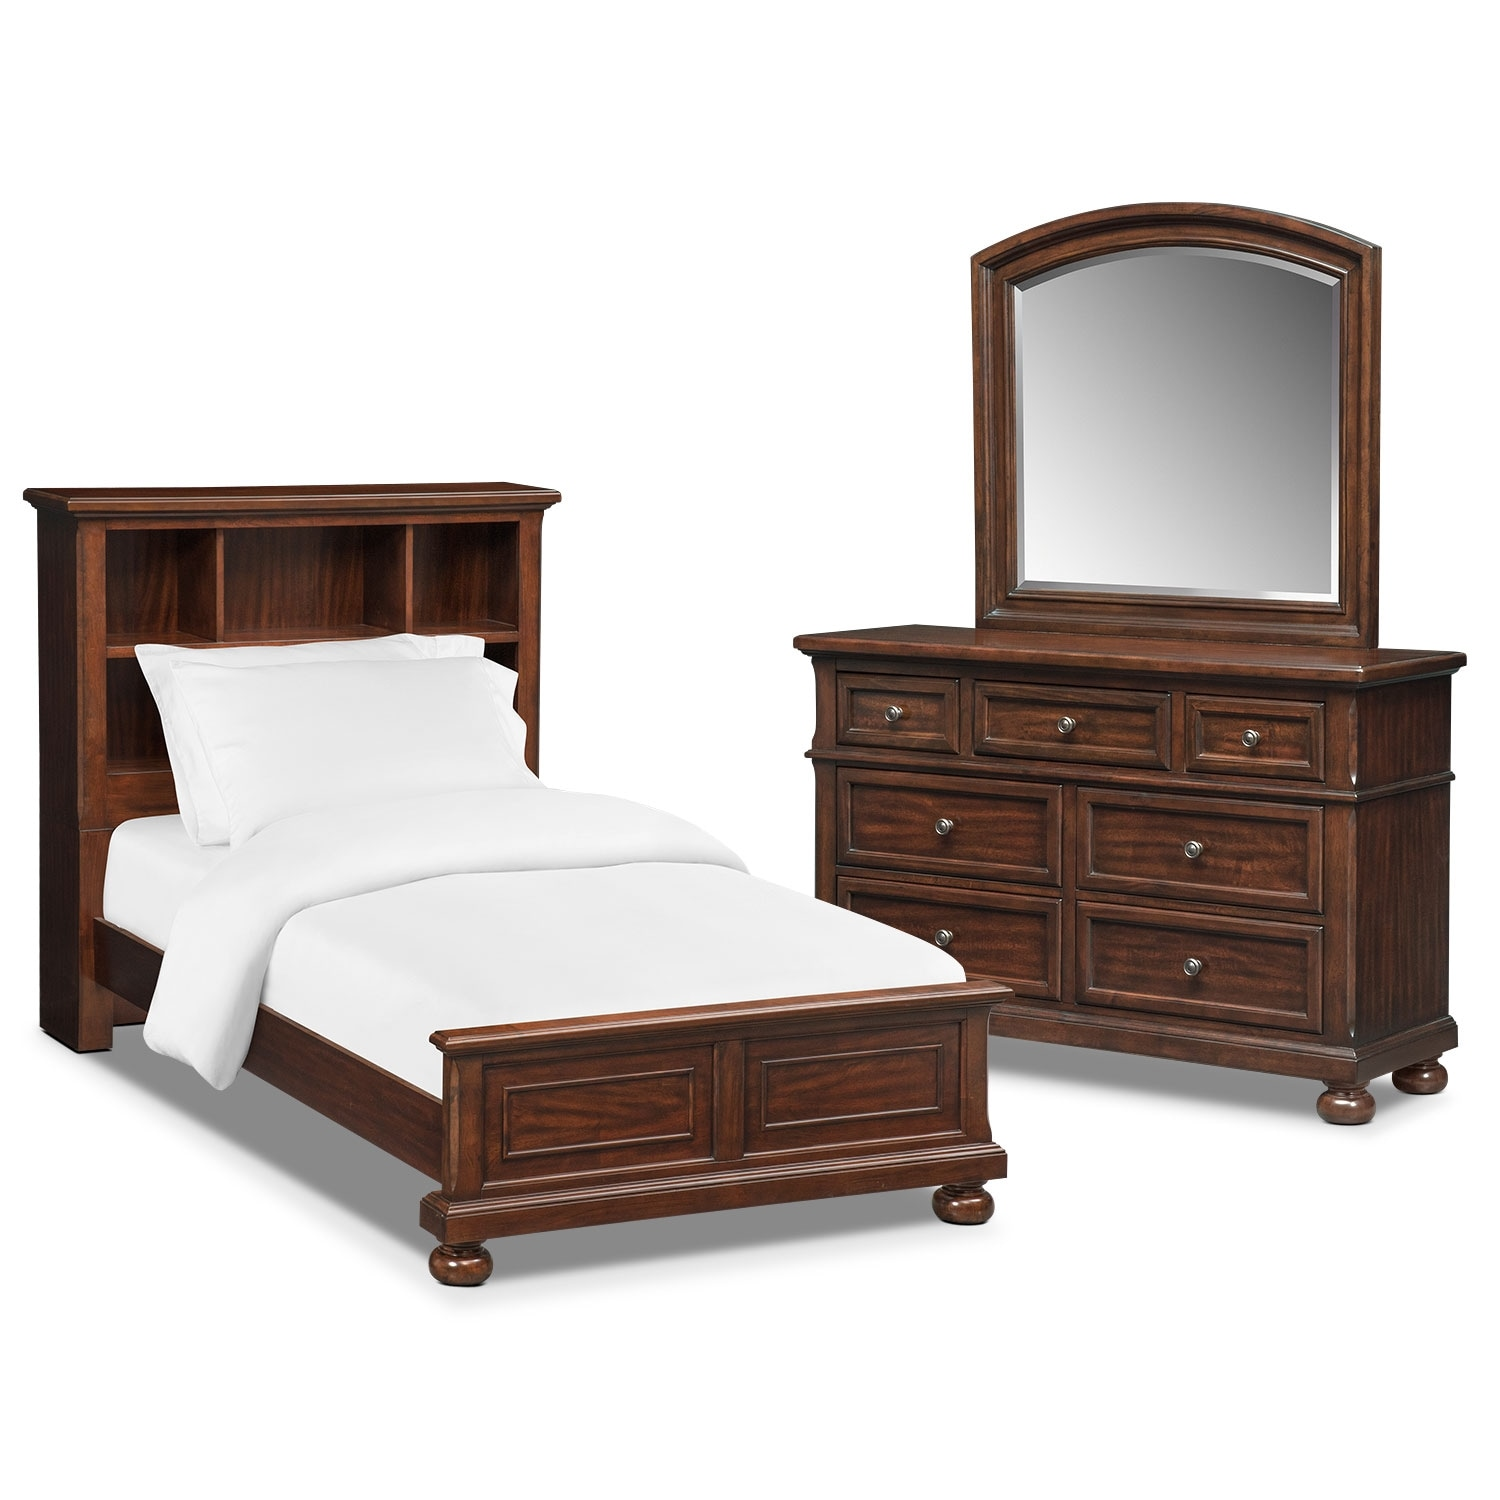 Kids Furniture - Hanover Youth 5-Piece Bookcase Bedroom Set with Dresser and Mirror